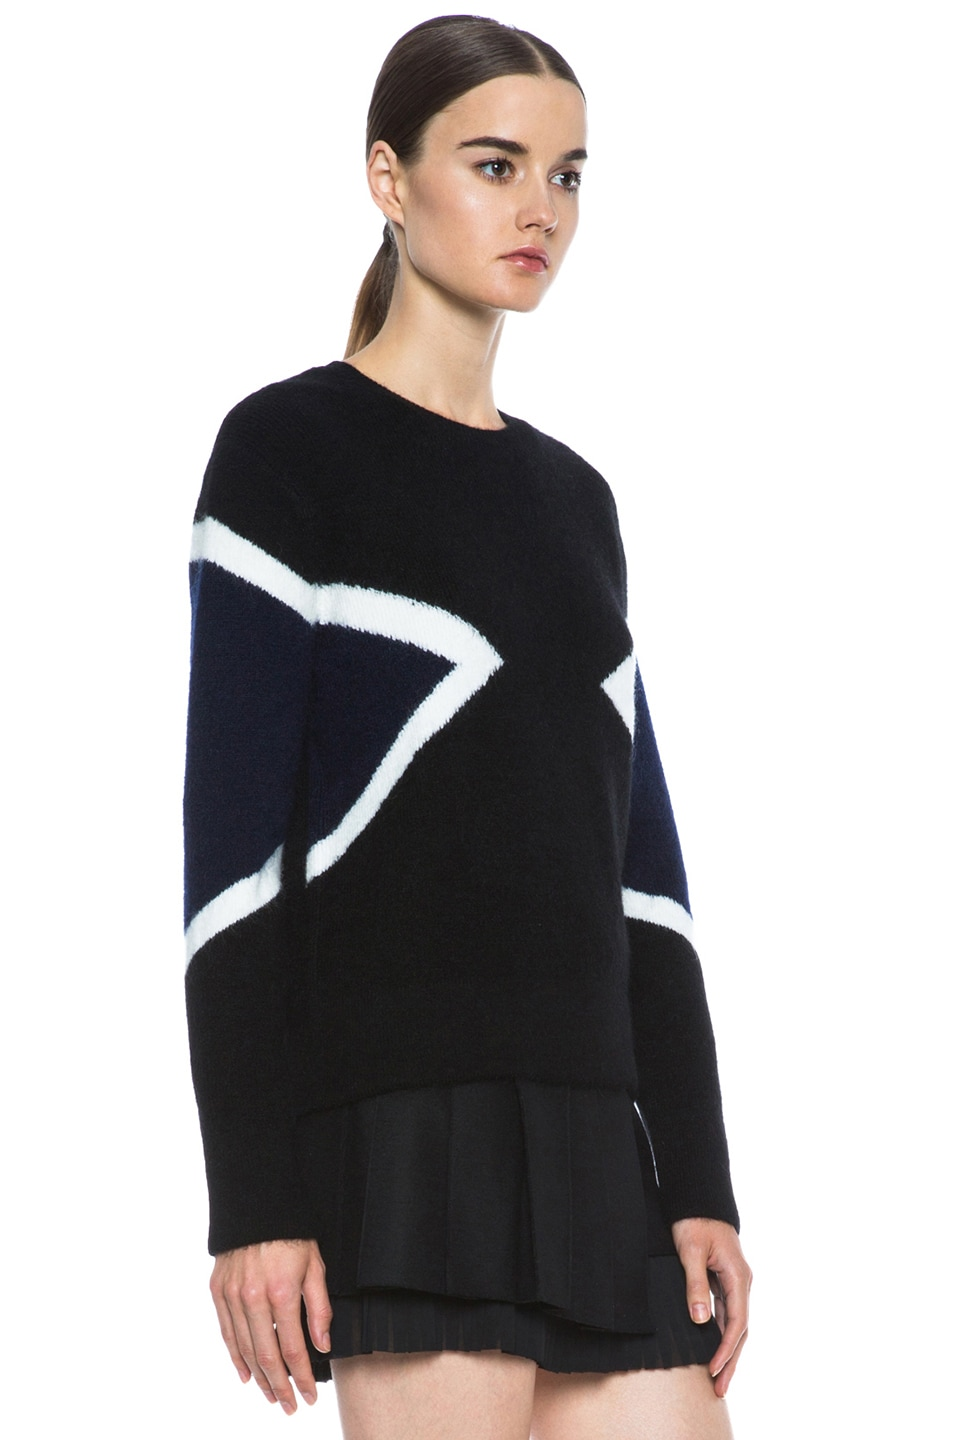 Image 3 of Neil Barrett Modernist Mohair-Blend Crew Neck Knit in Black & Navy